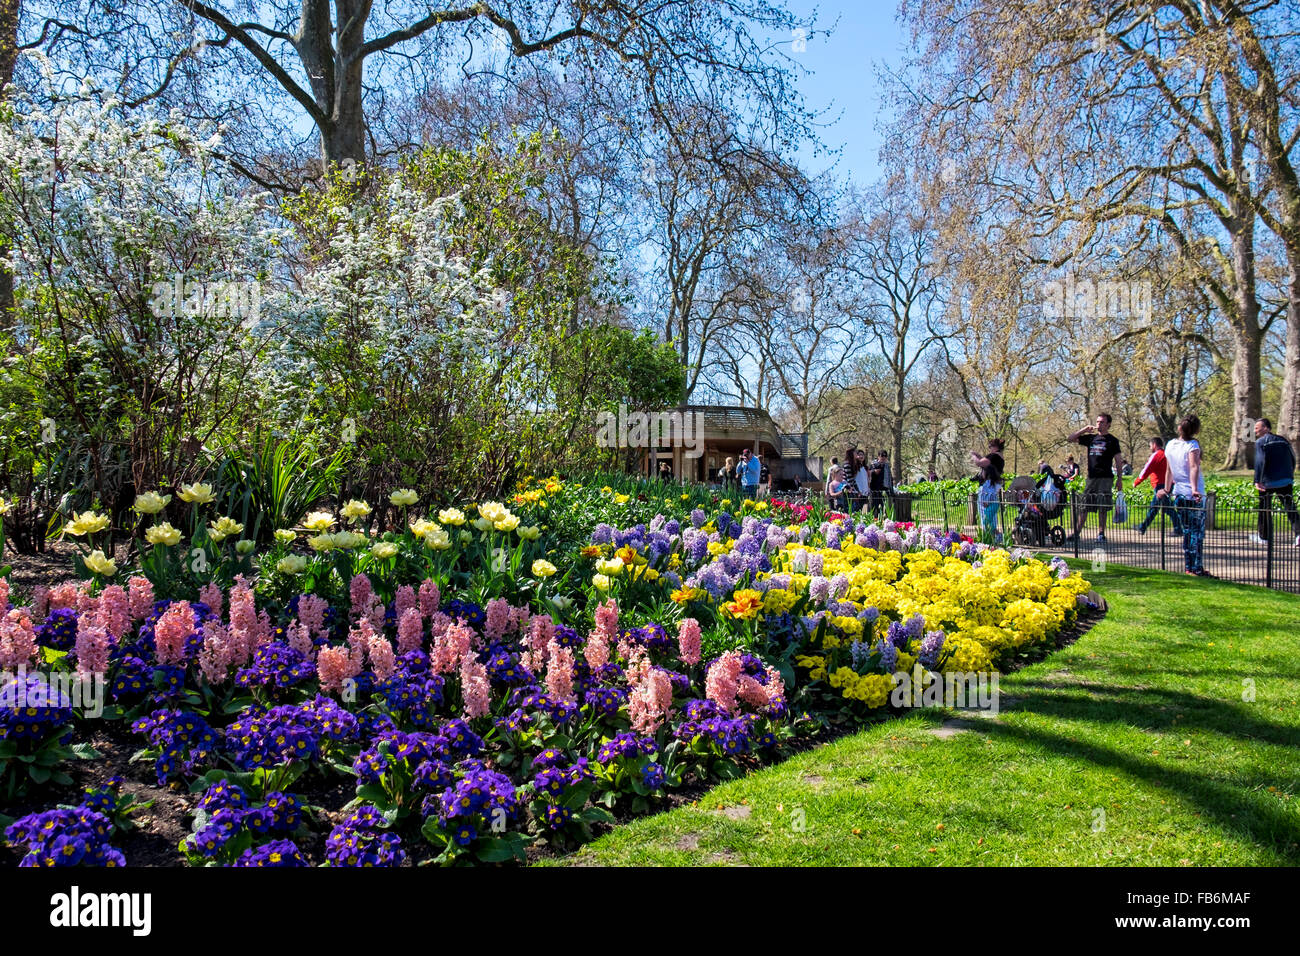 St James Park London Colourful Display Of Spring Flowers In The